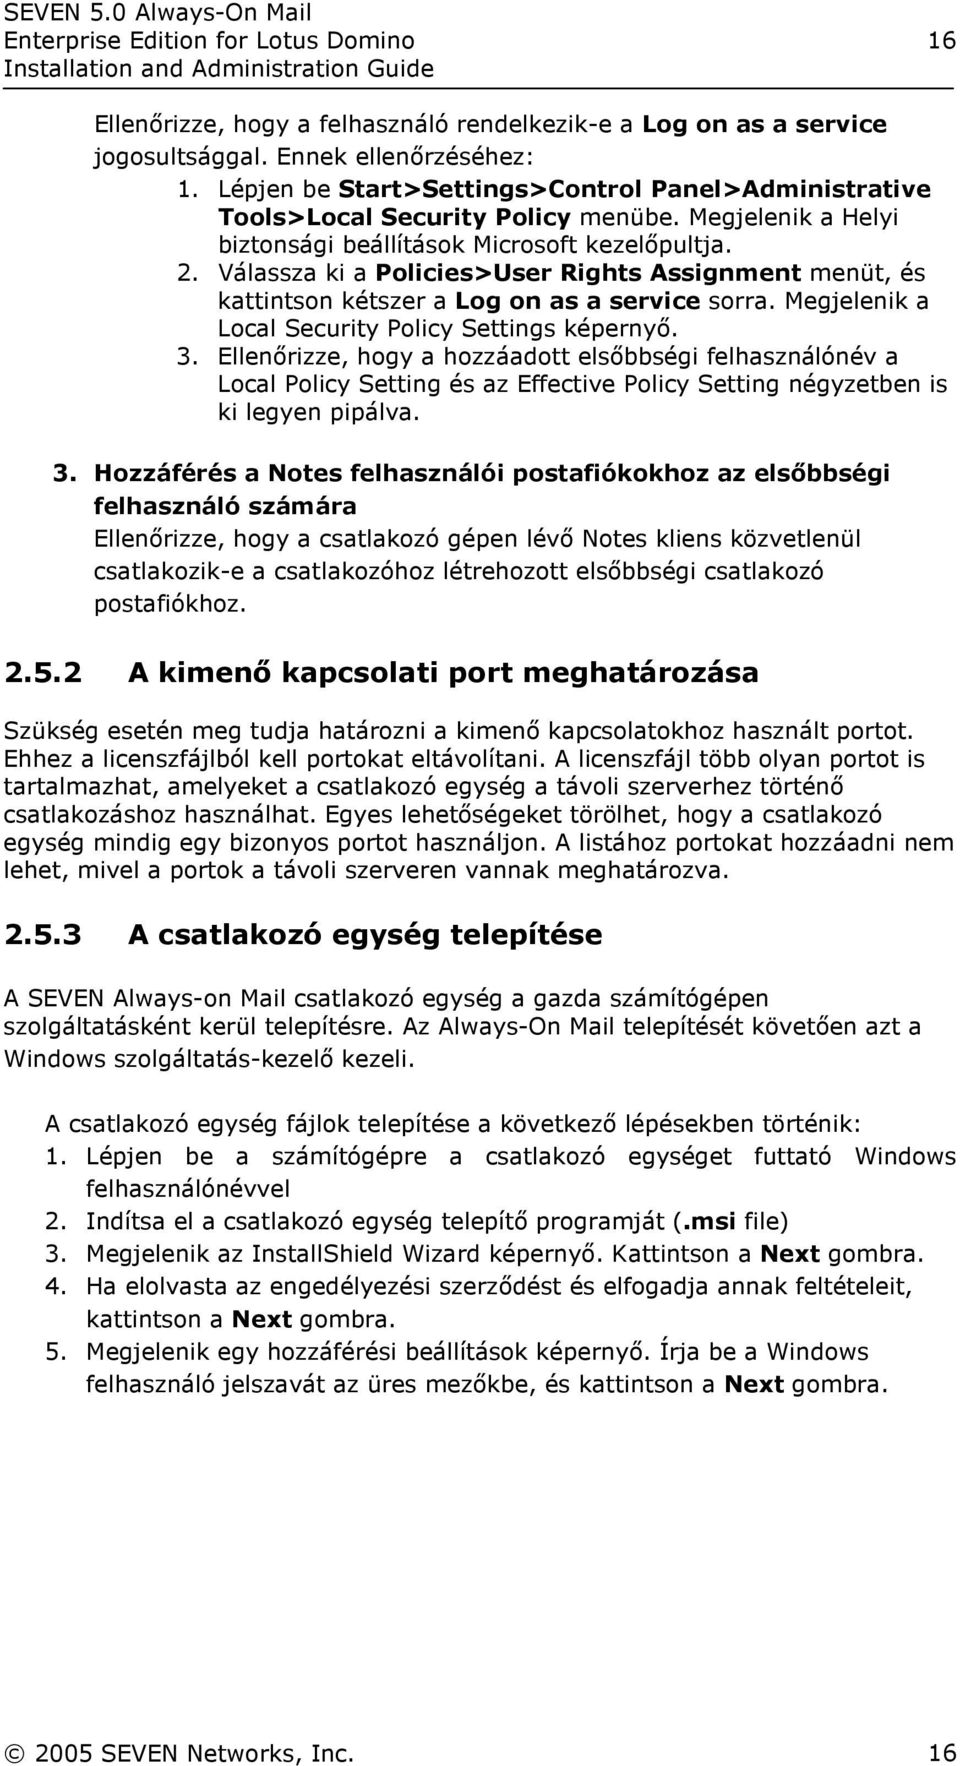 Válassza ki a Policies>User Rights Assignment menüt, és kattintson kétszer a Log on as a service sorra. Megjelenik a Local Security Policy Settings képernyő. 3.